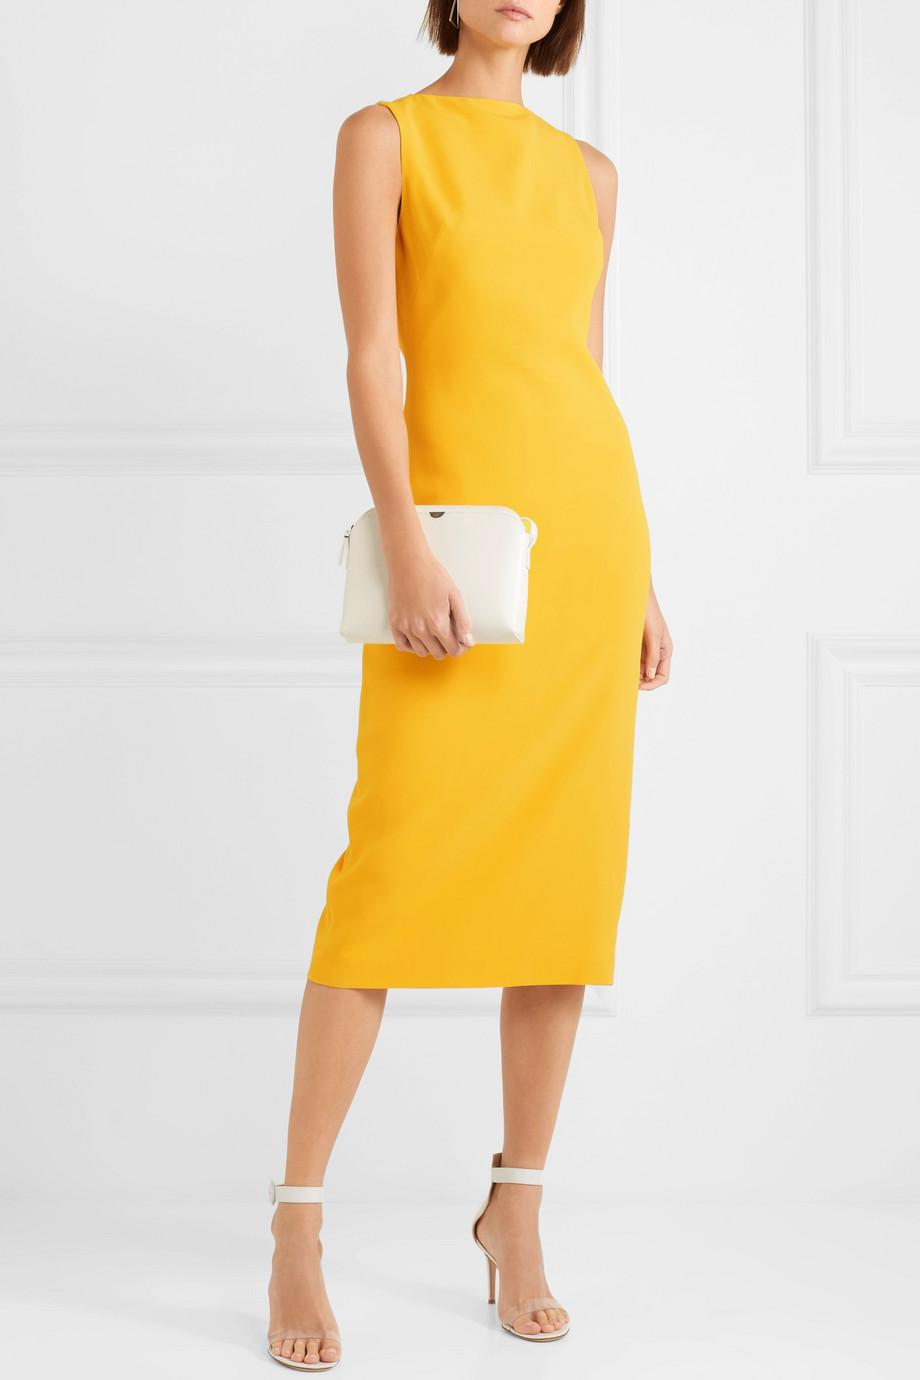 Brandon Maxwell Yellow Crepe Midi Dress-Meghan Markle